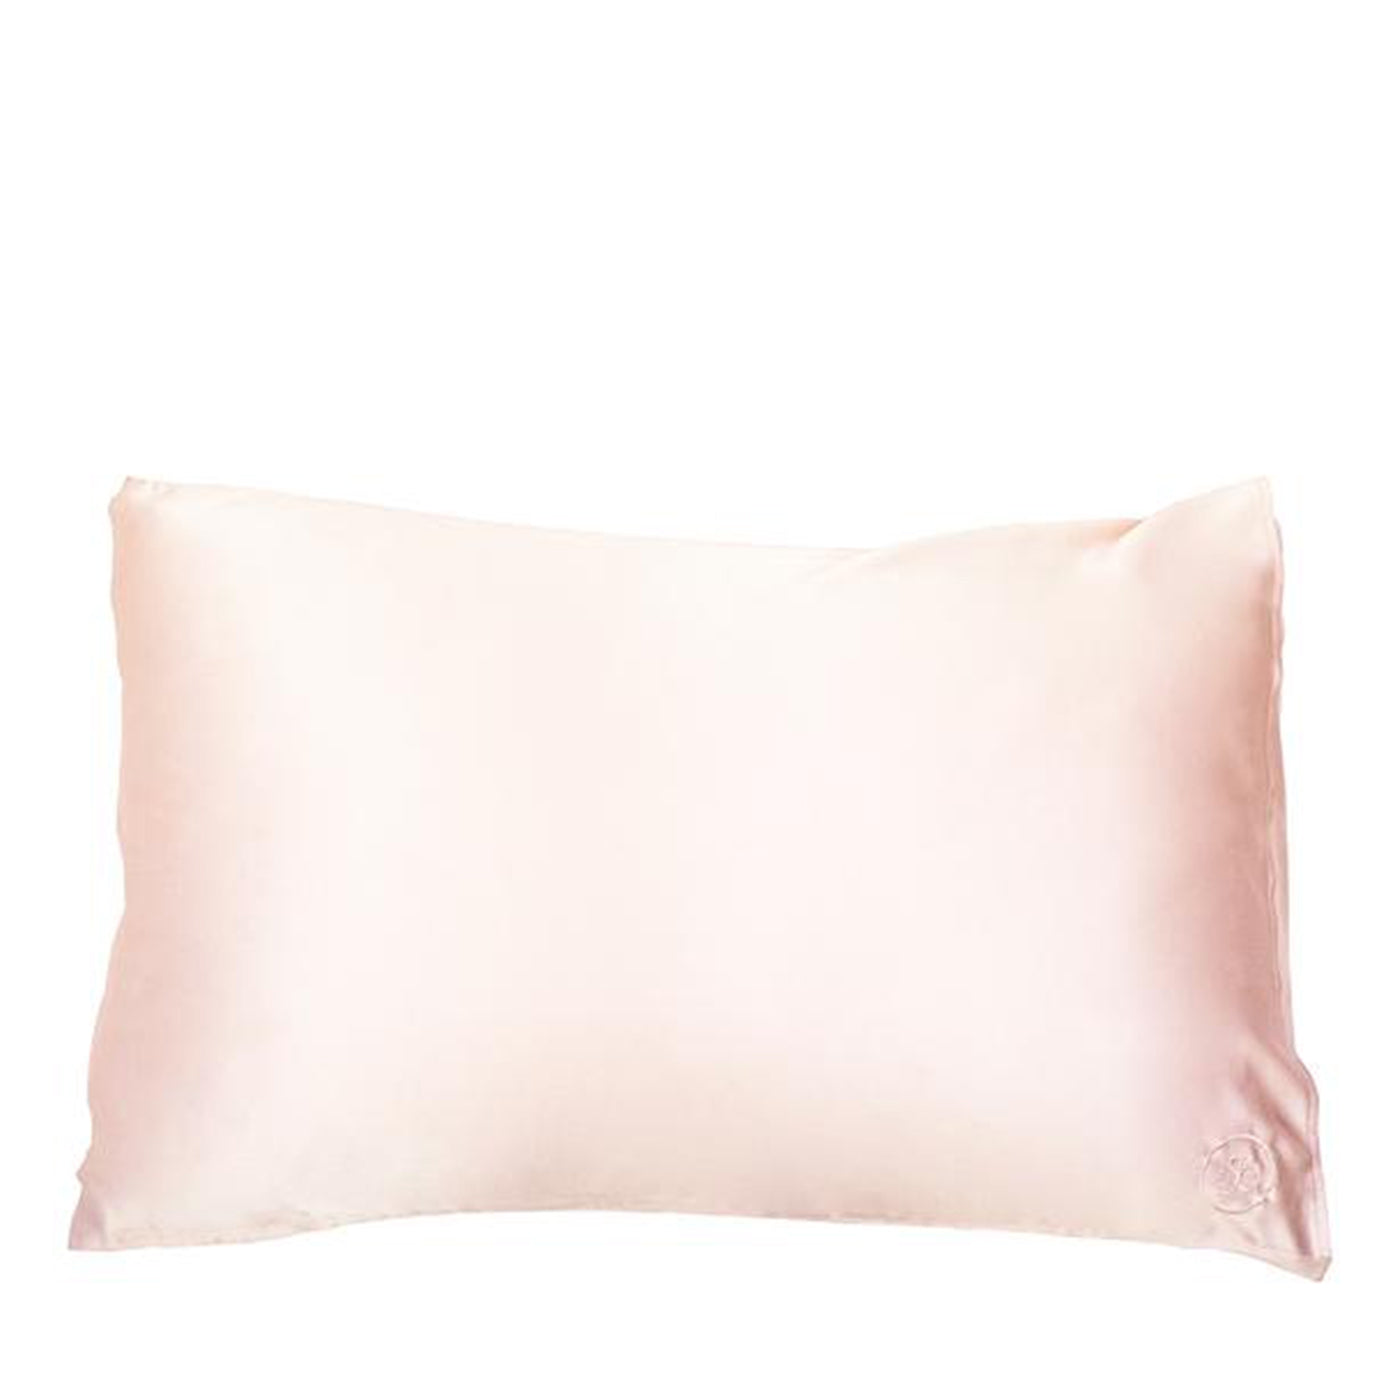 The Goodnight Co Silk Pillowcase Blush